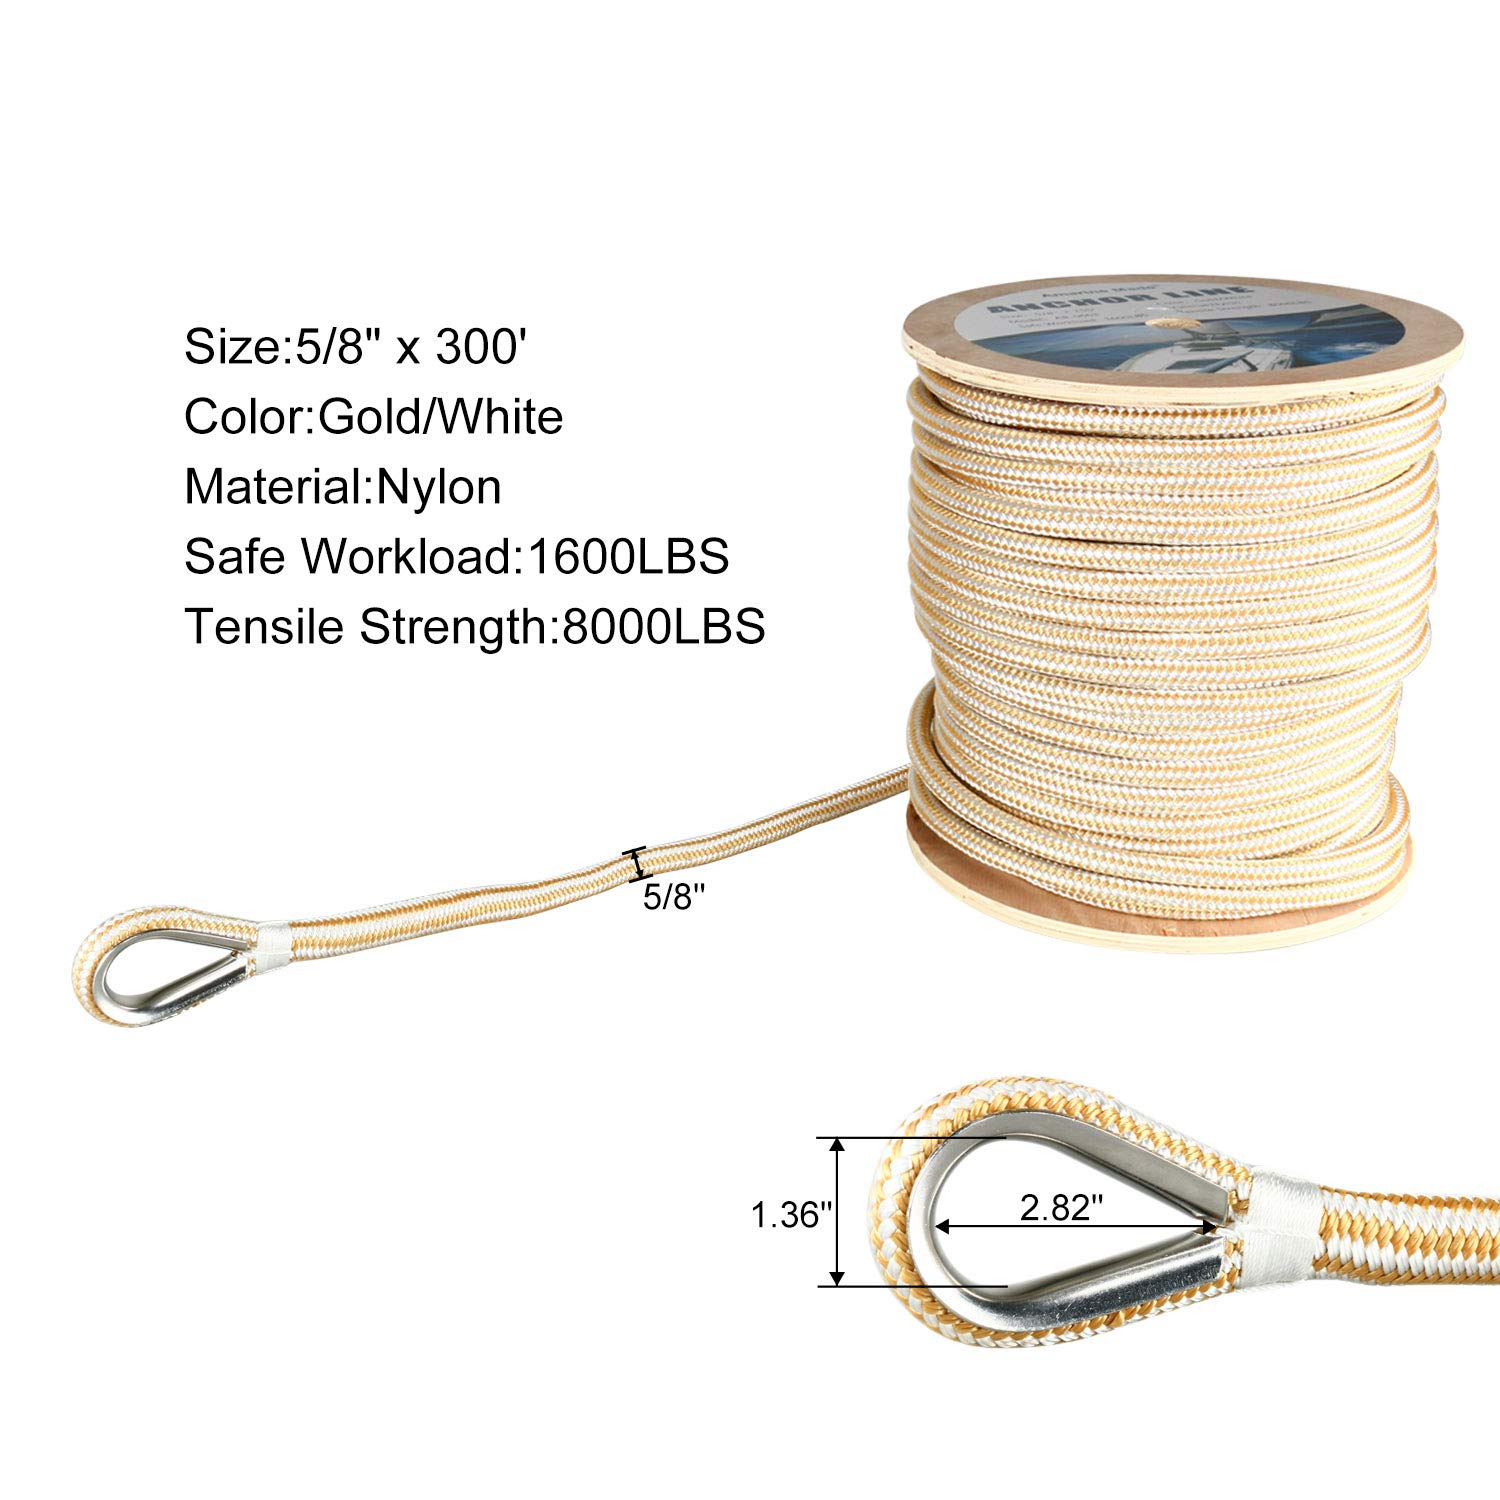 Amarine Made Heavy Duty Double Braid Nylon Anchor Line with Stainless Steel Thimble-White/Gold (5/8'' x 300')